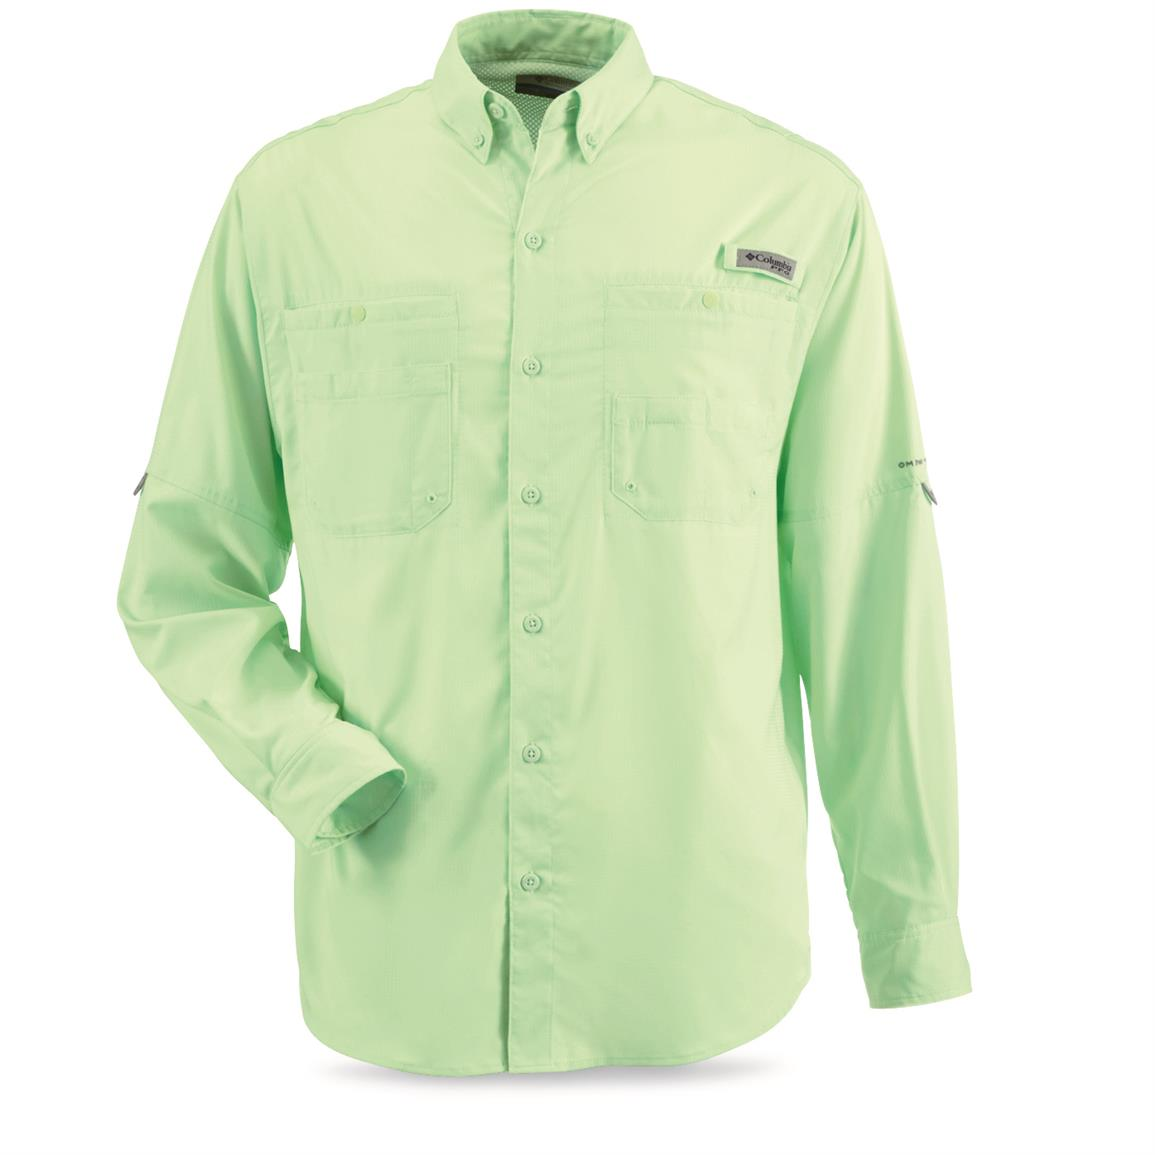 Columbia Men's PFG Tamiami II Long-Sleeve Shirt, Key West